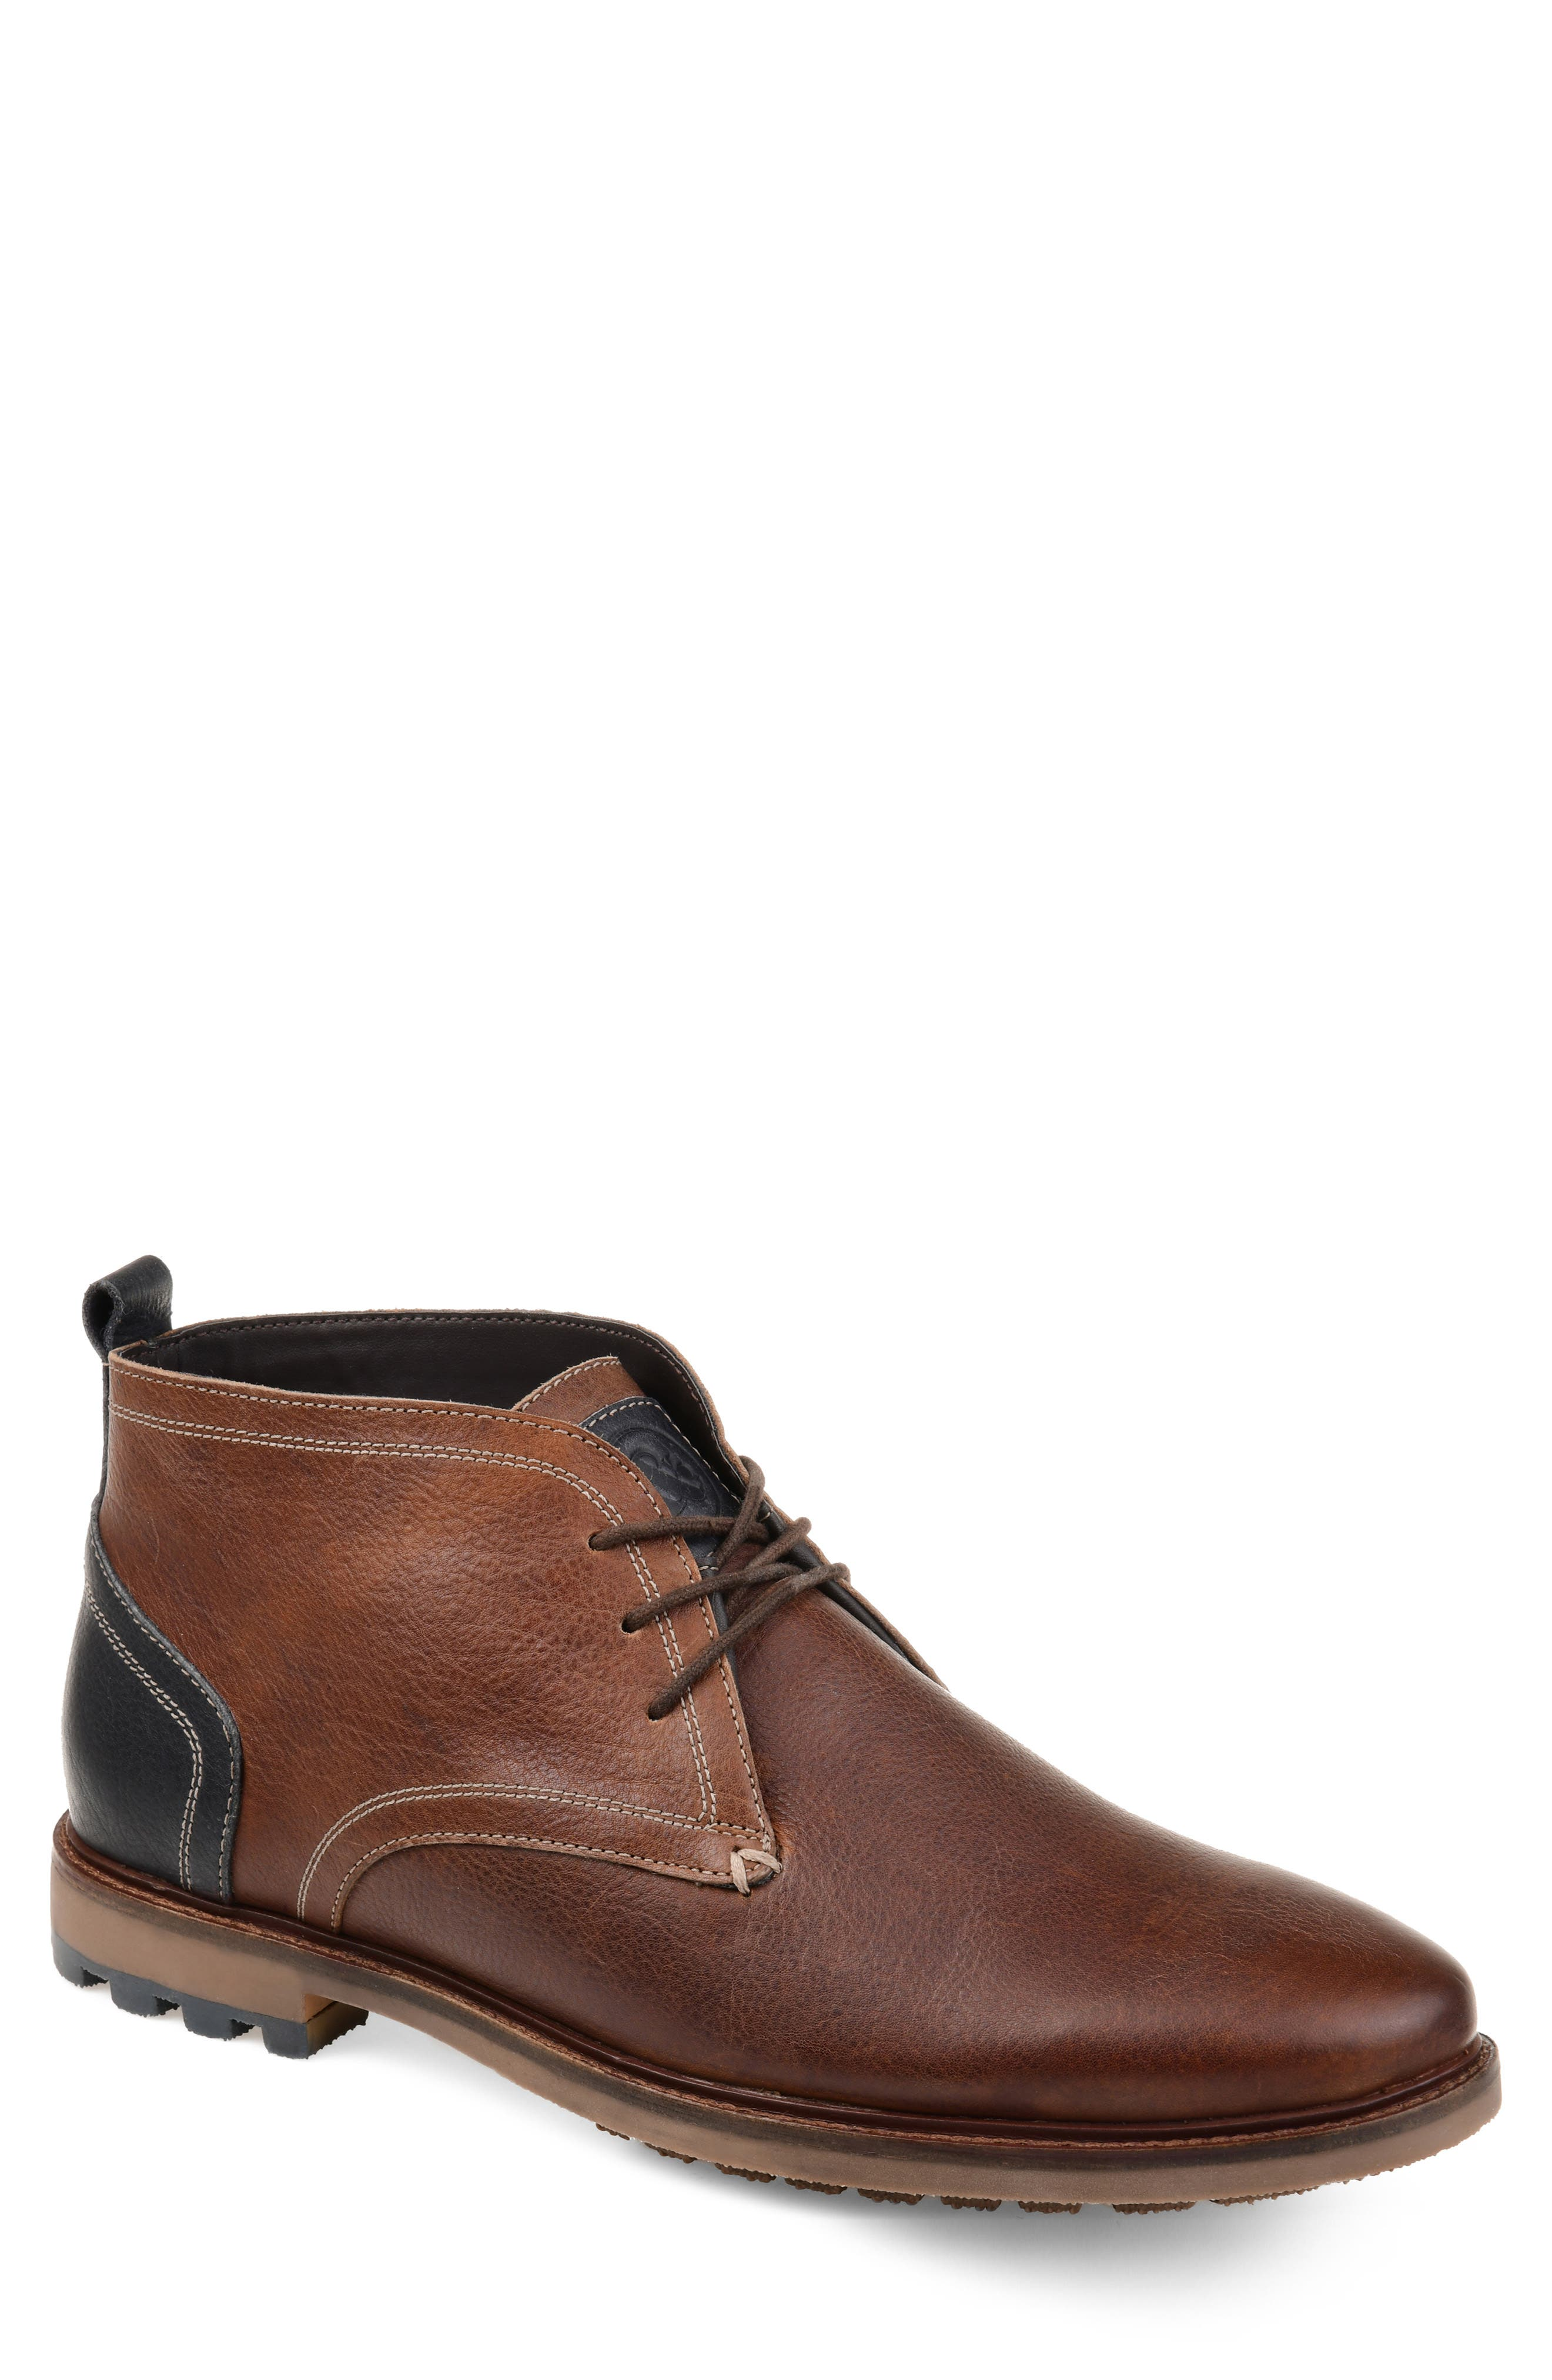 A lugged rubber tread securely grounds a chukka boot crafted to keep water at bay from richly pebbled leather with bold color blocking at the heel. Style Name: Thomas & Vine Logan Waterproof Chukka Boot (Men). Style Number: 5715630. Available in stores.